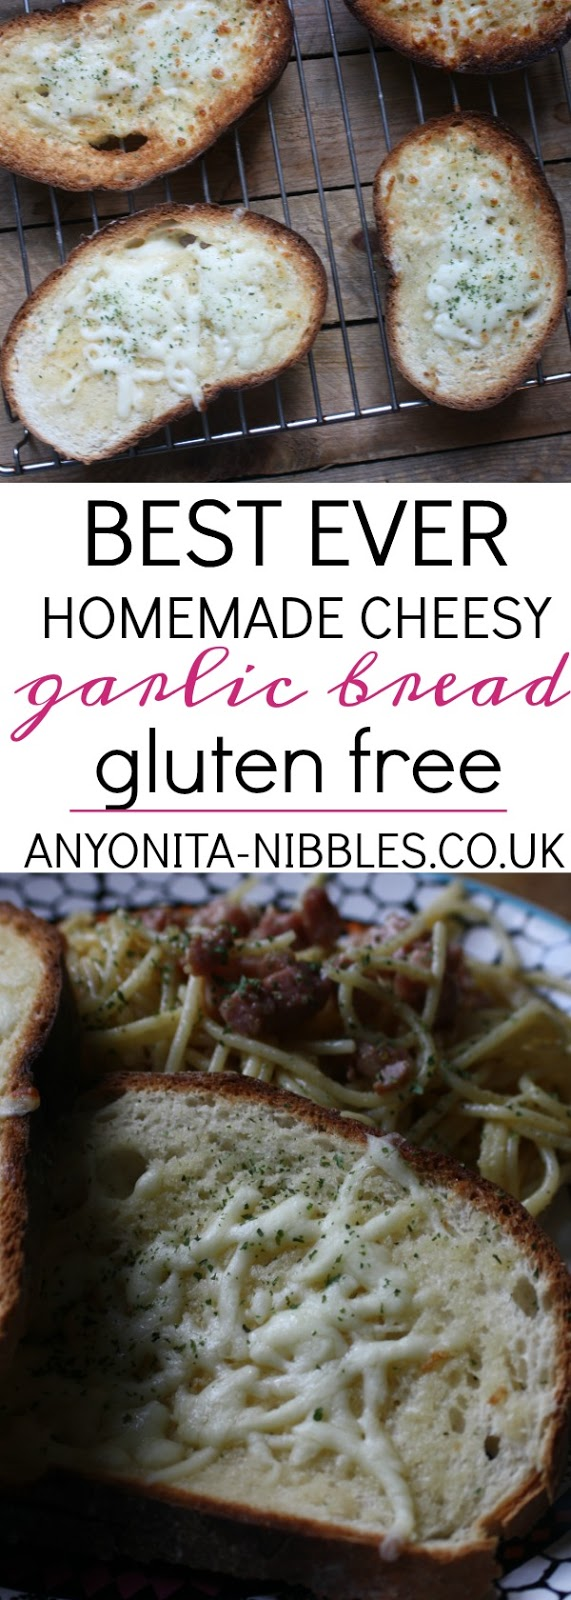 Best Ever Gluten Free Garlic Bread from Anyonita Nibbles